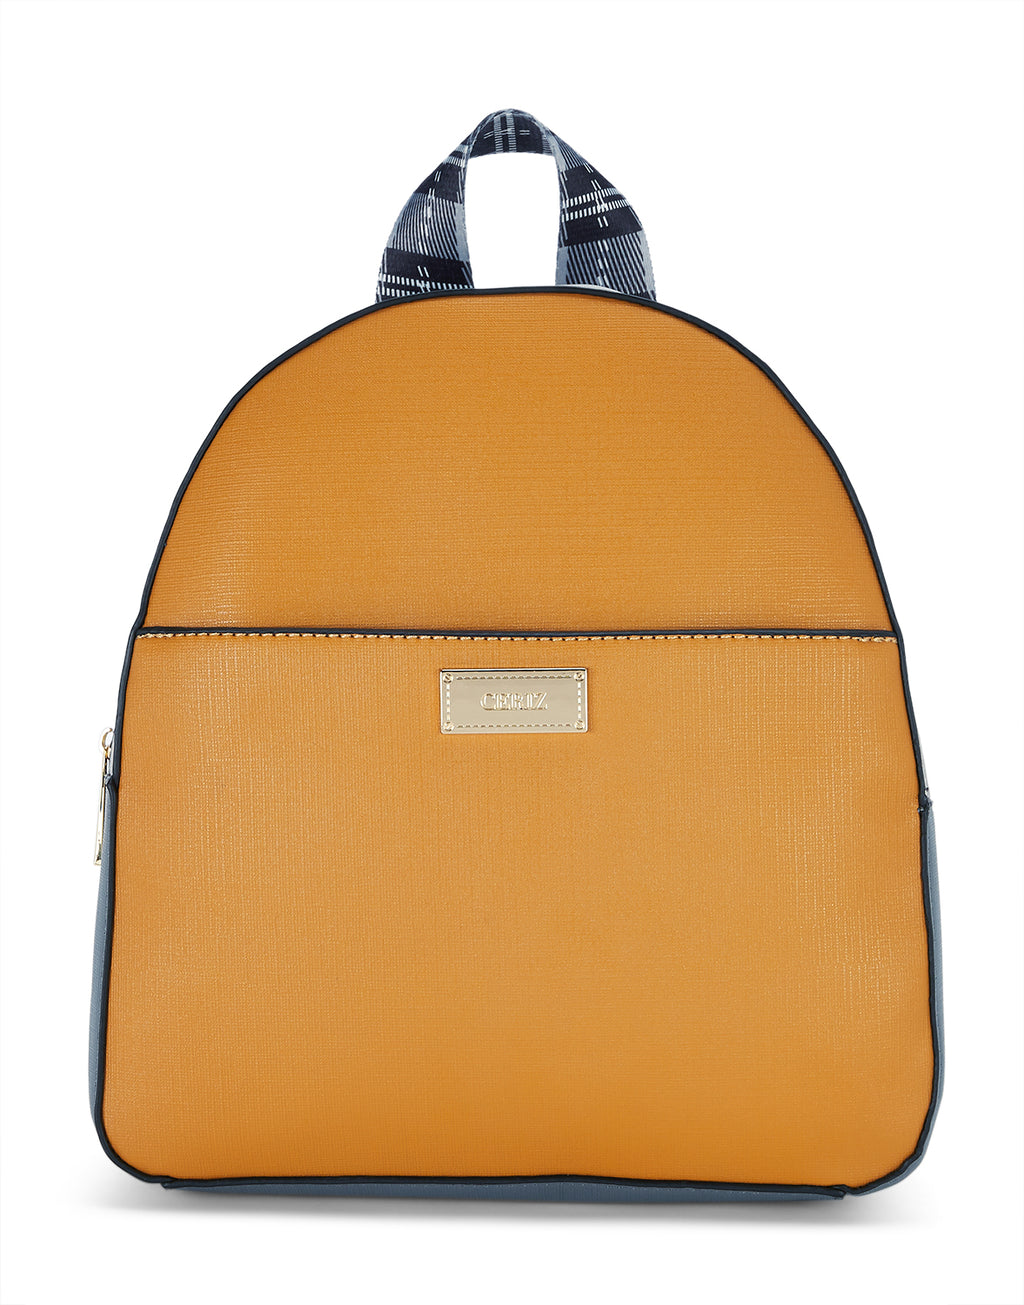 Geneva Verve Yellow Backpack